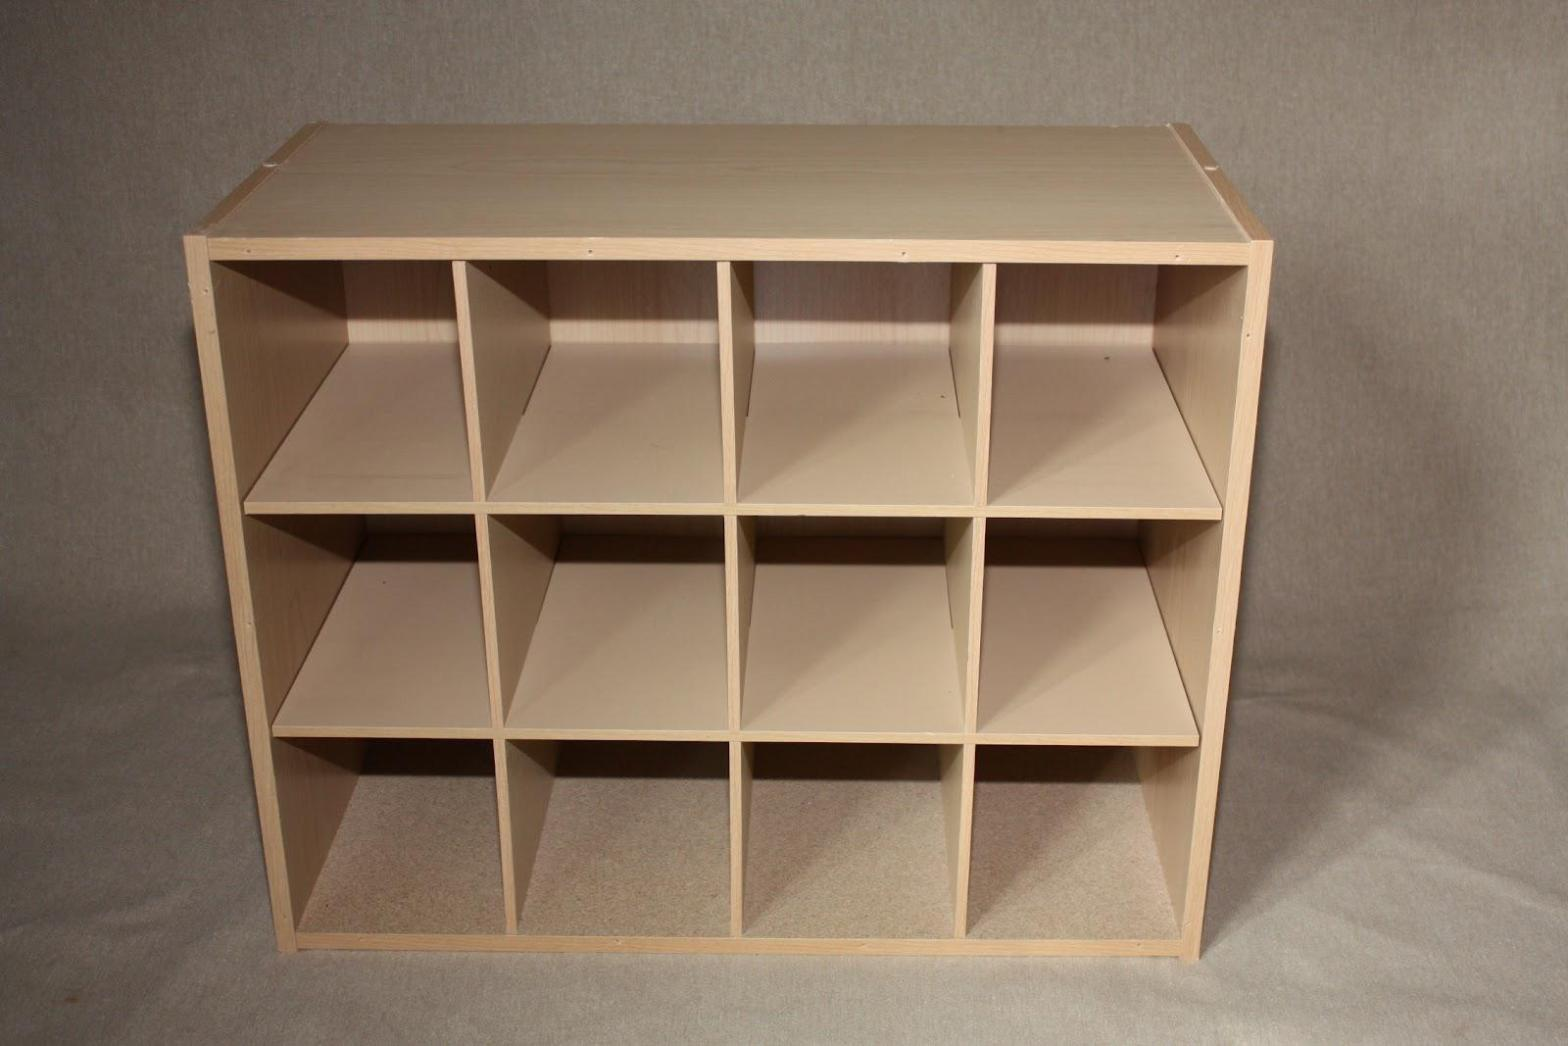 Image of: Wooden Cube Shelving Units